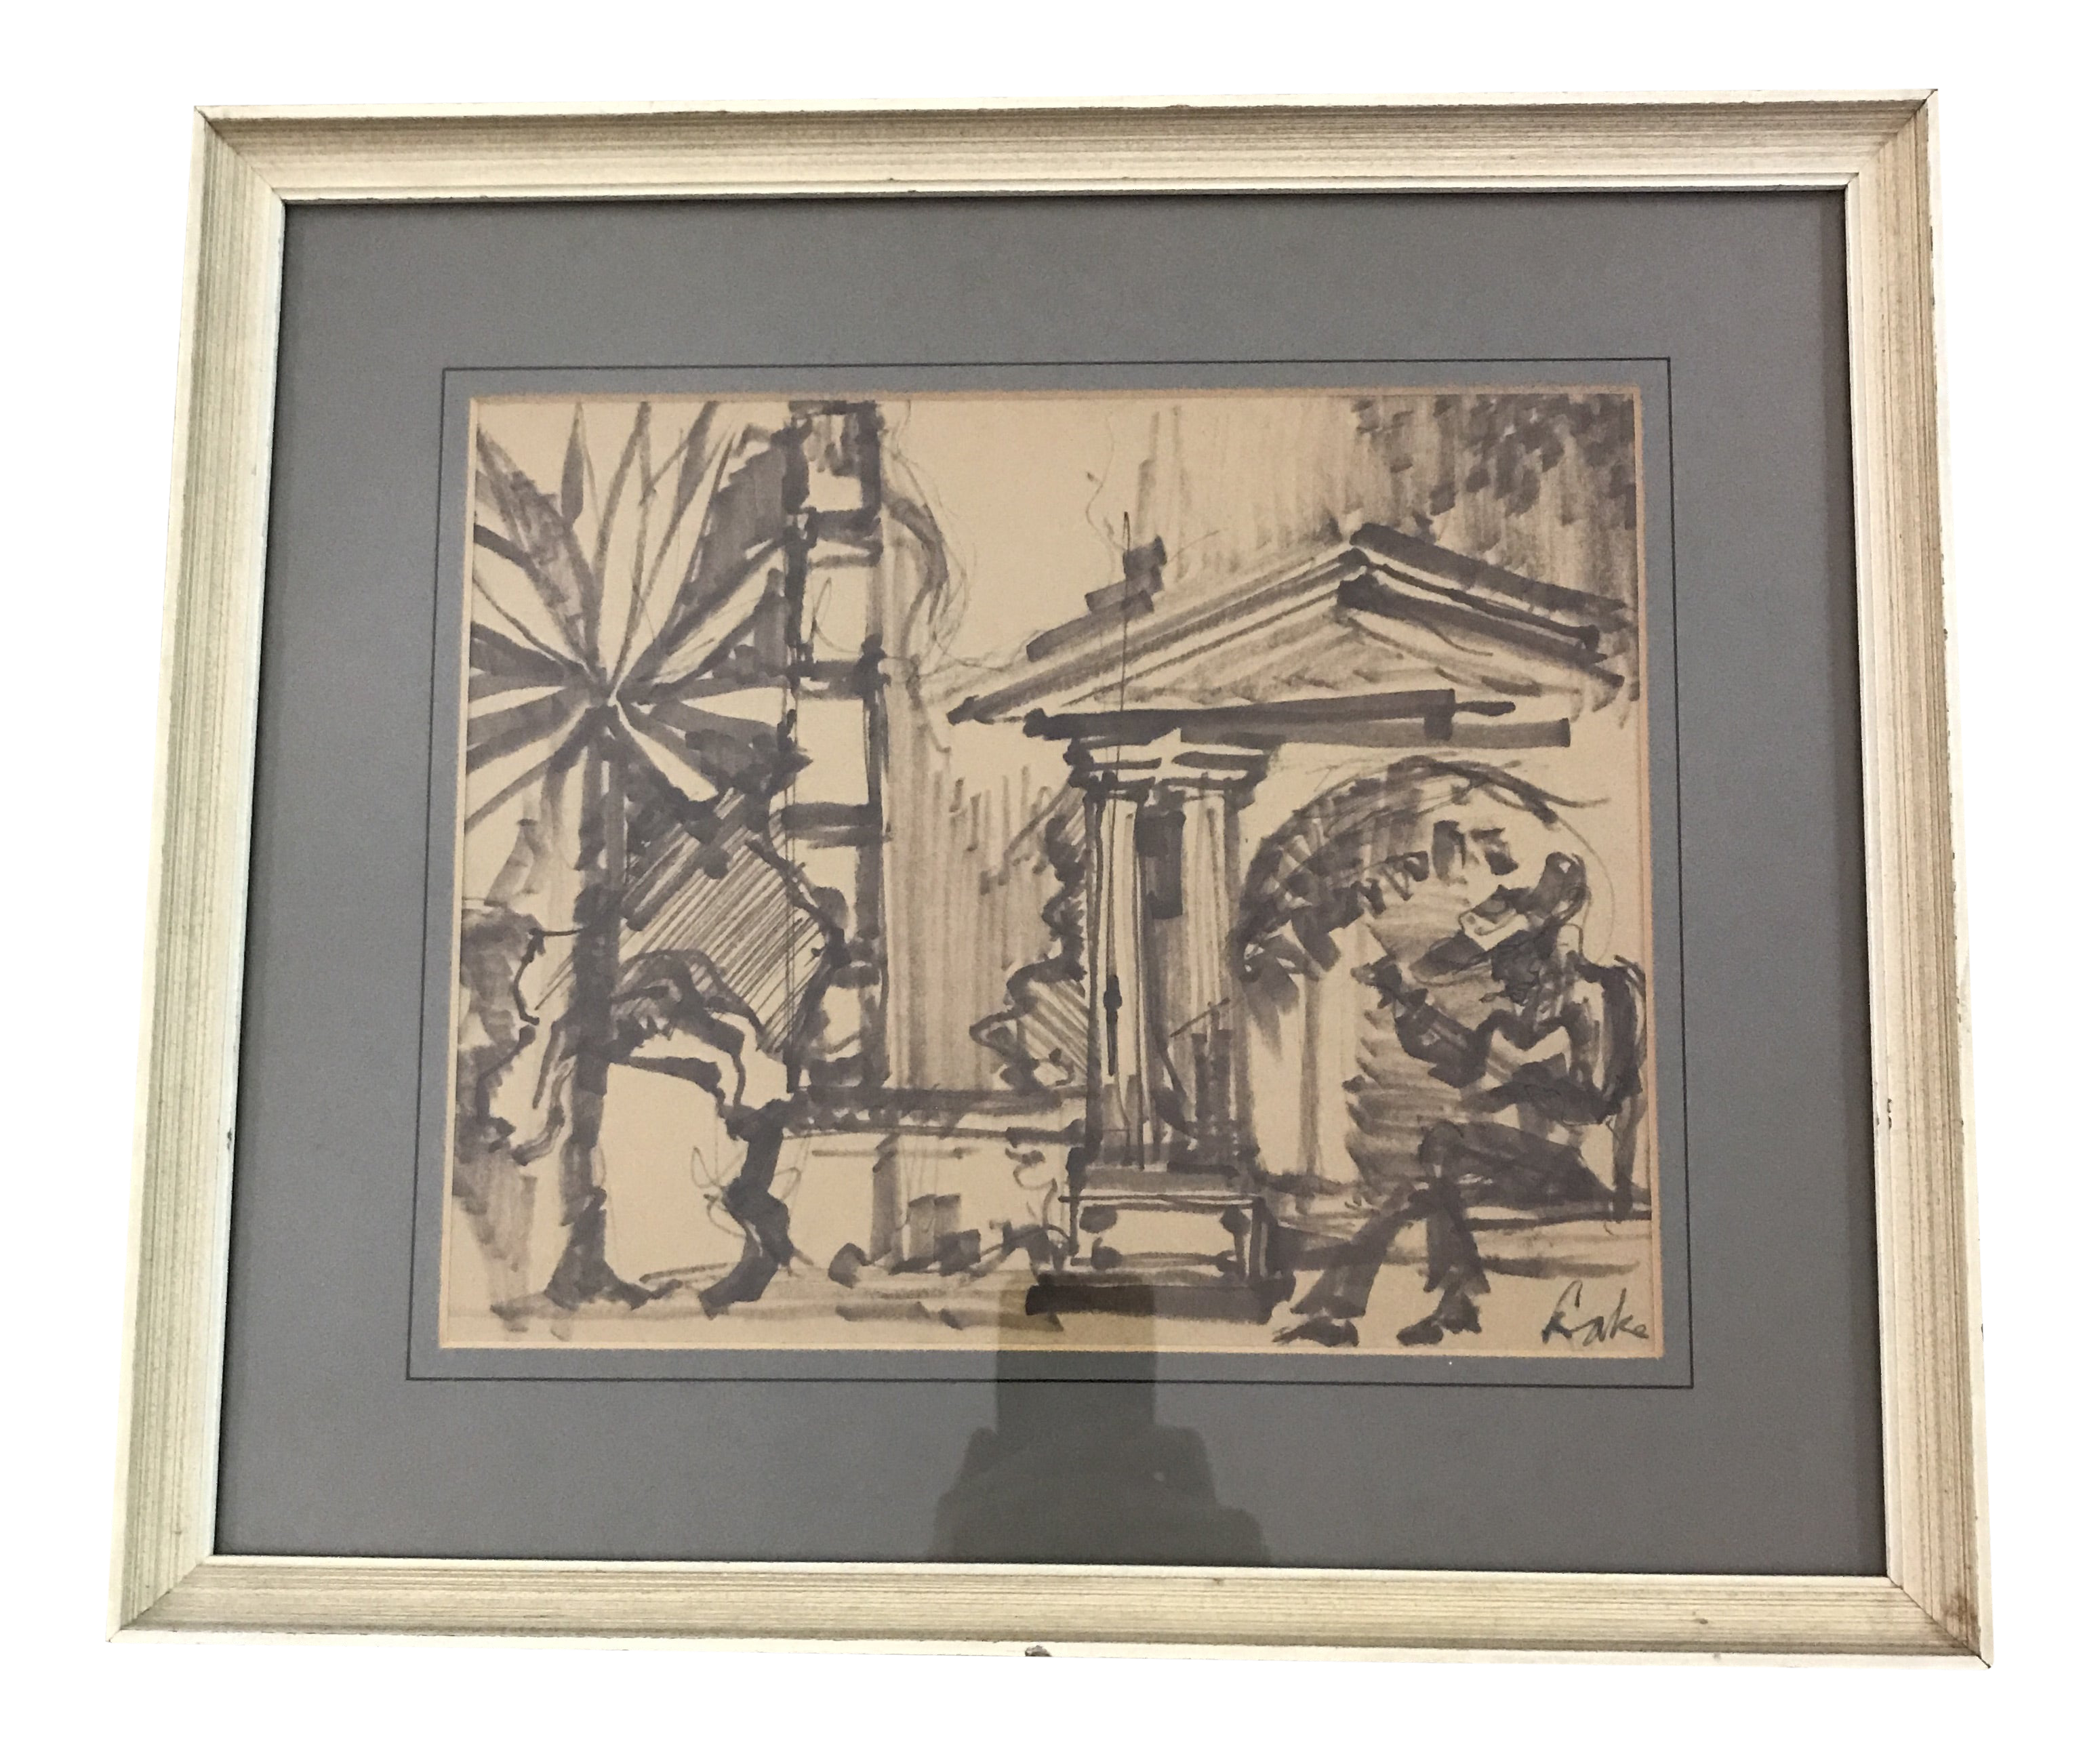 Framed Vintage Neoclassic Architectural Scene Sketch Chairish